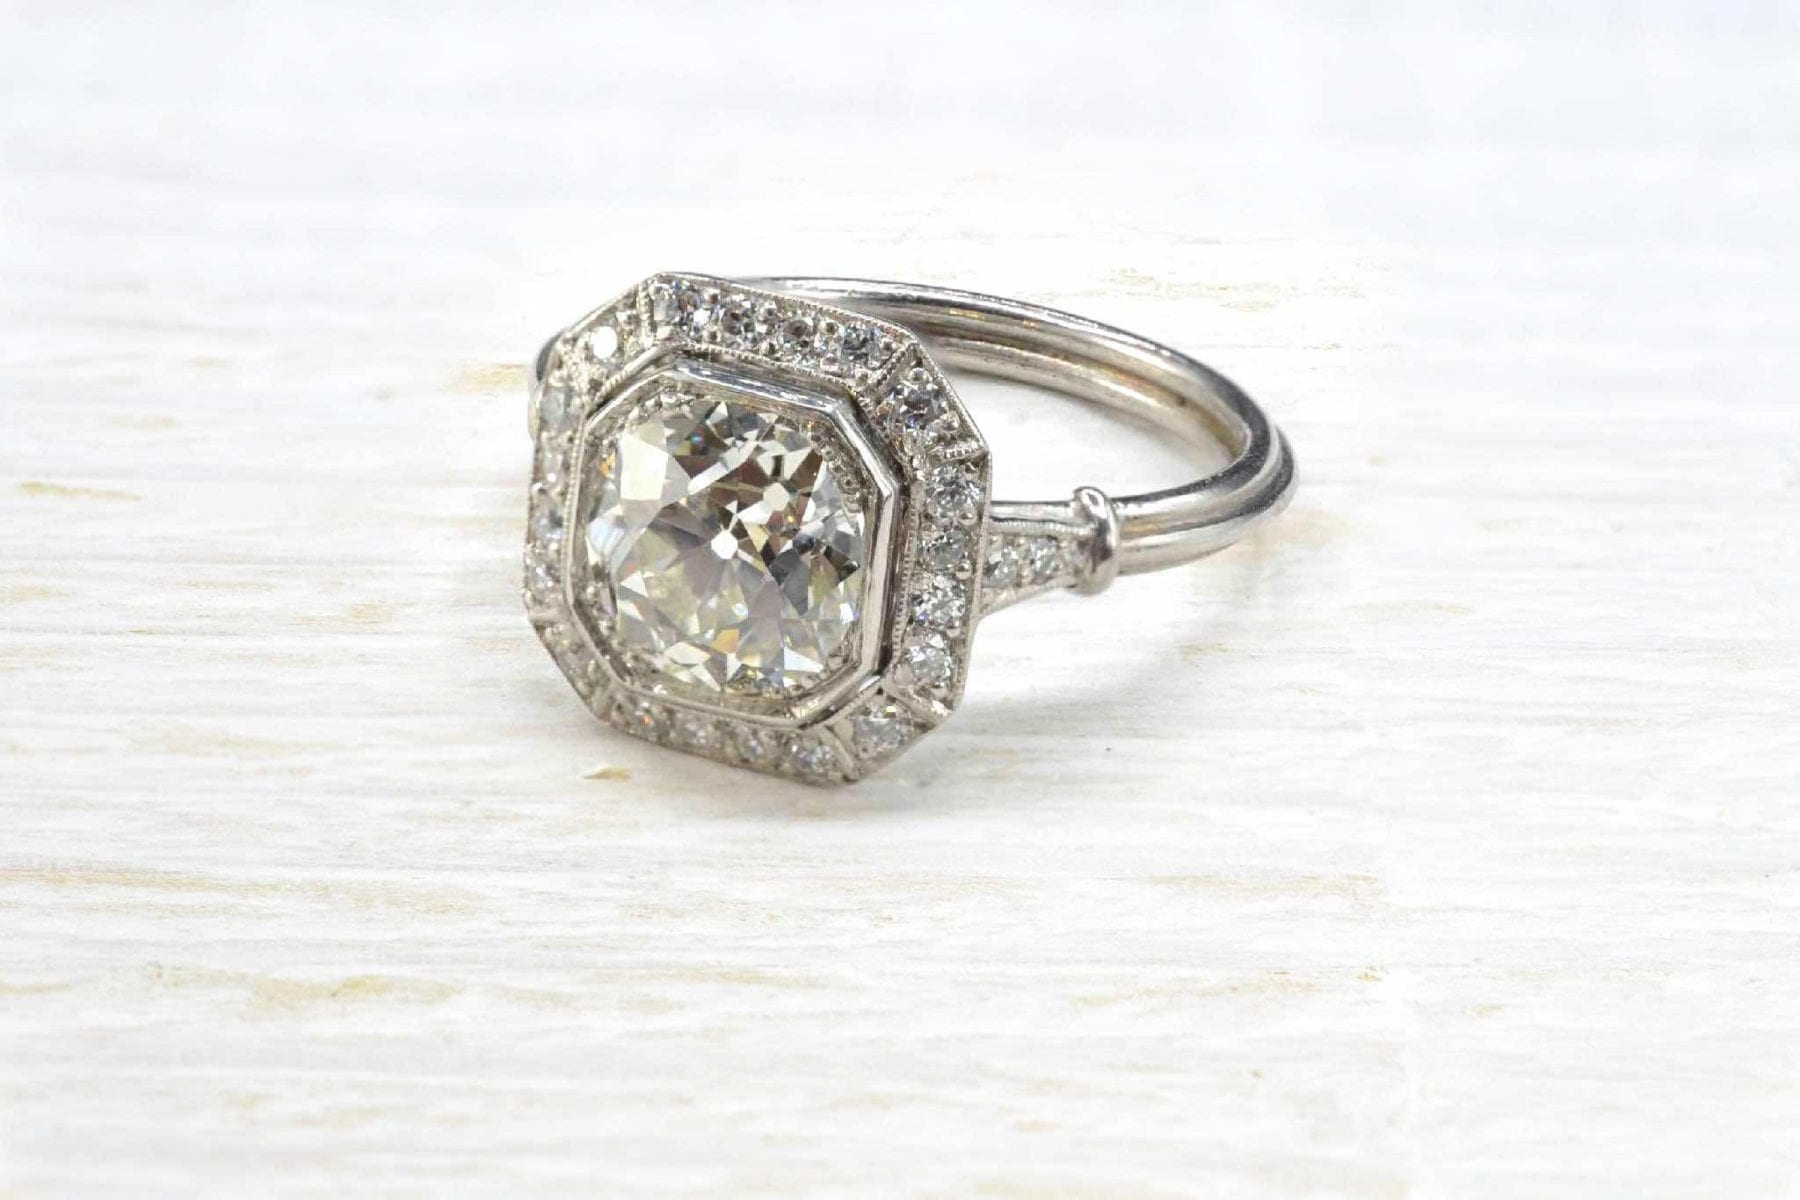 Central diamond ring